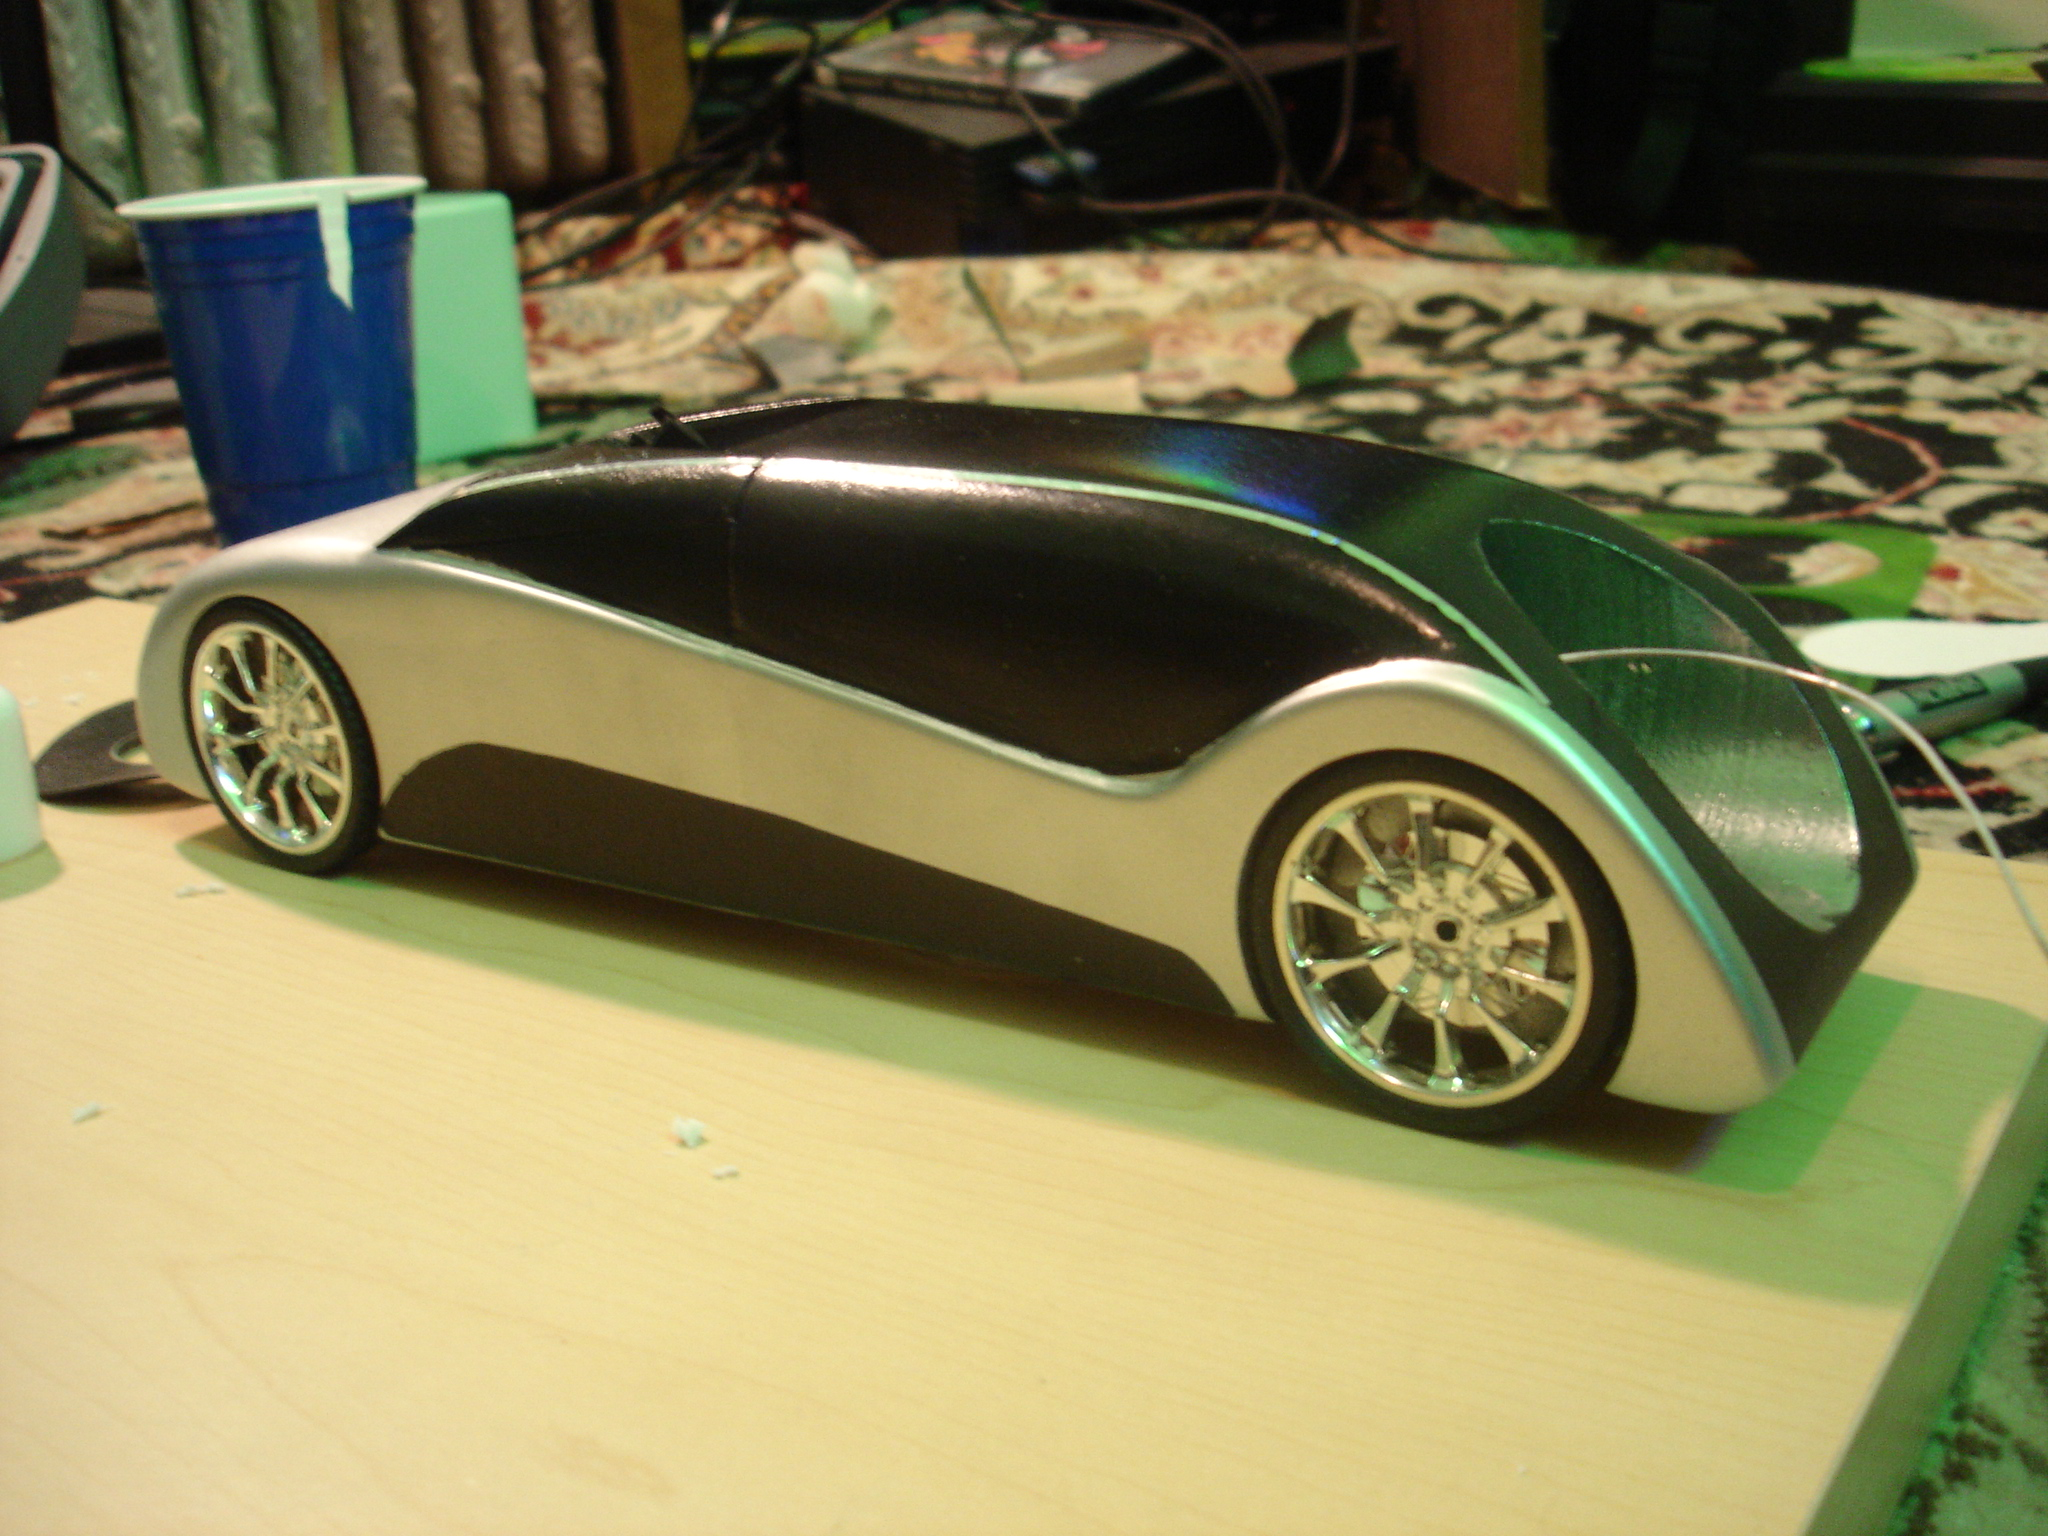 Best Pinewood Derby Design Pinewood Derby Design Competition 1st Place By